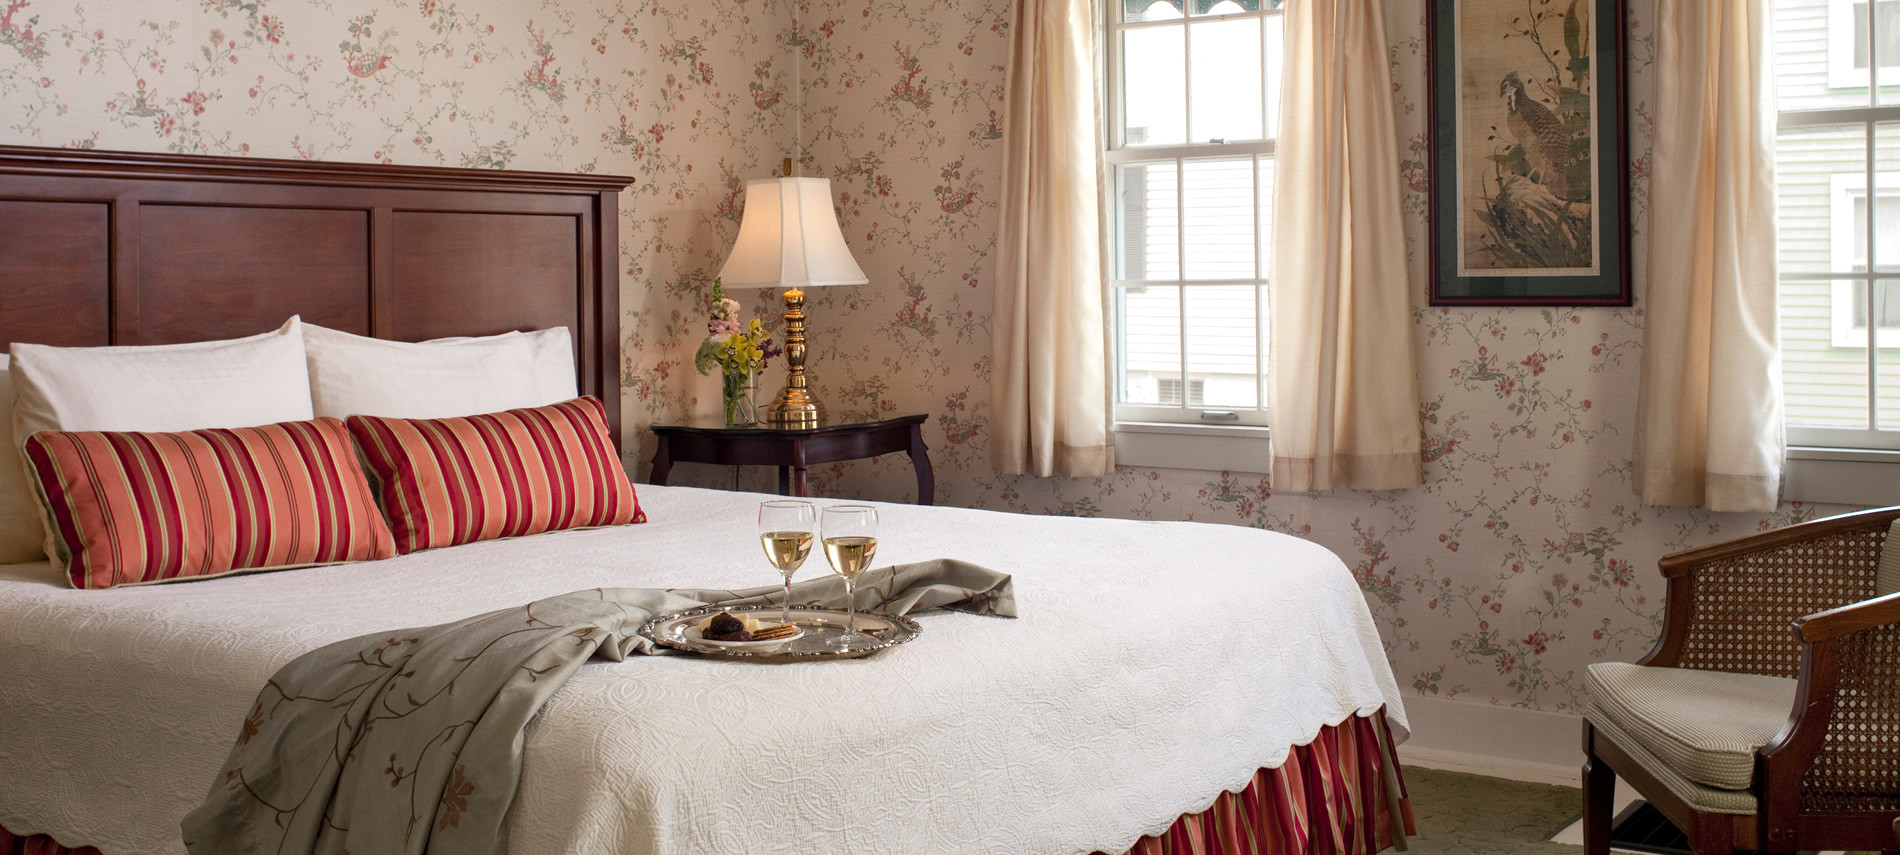 Plush King size bed with a white comforter, Flower Wall paper. ON the bed is a tray with two glasses of white wine.